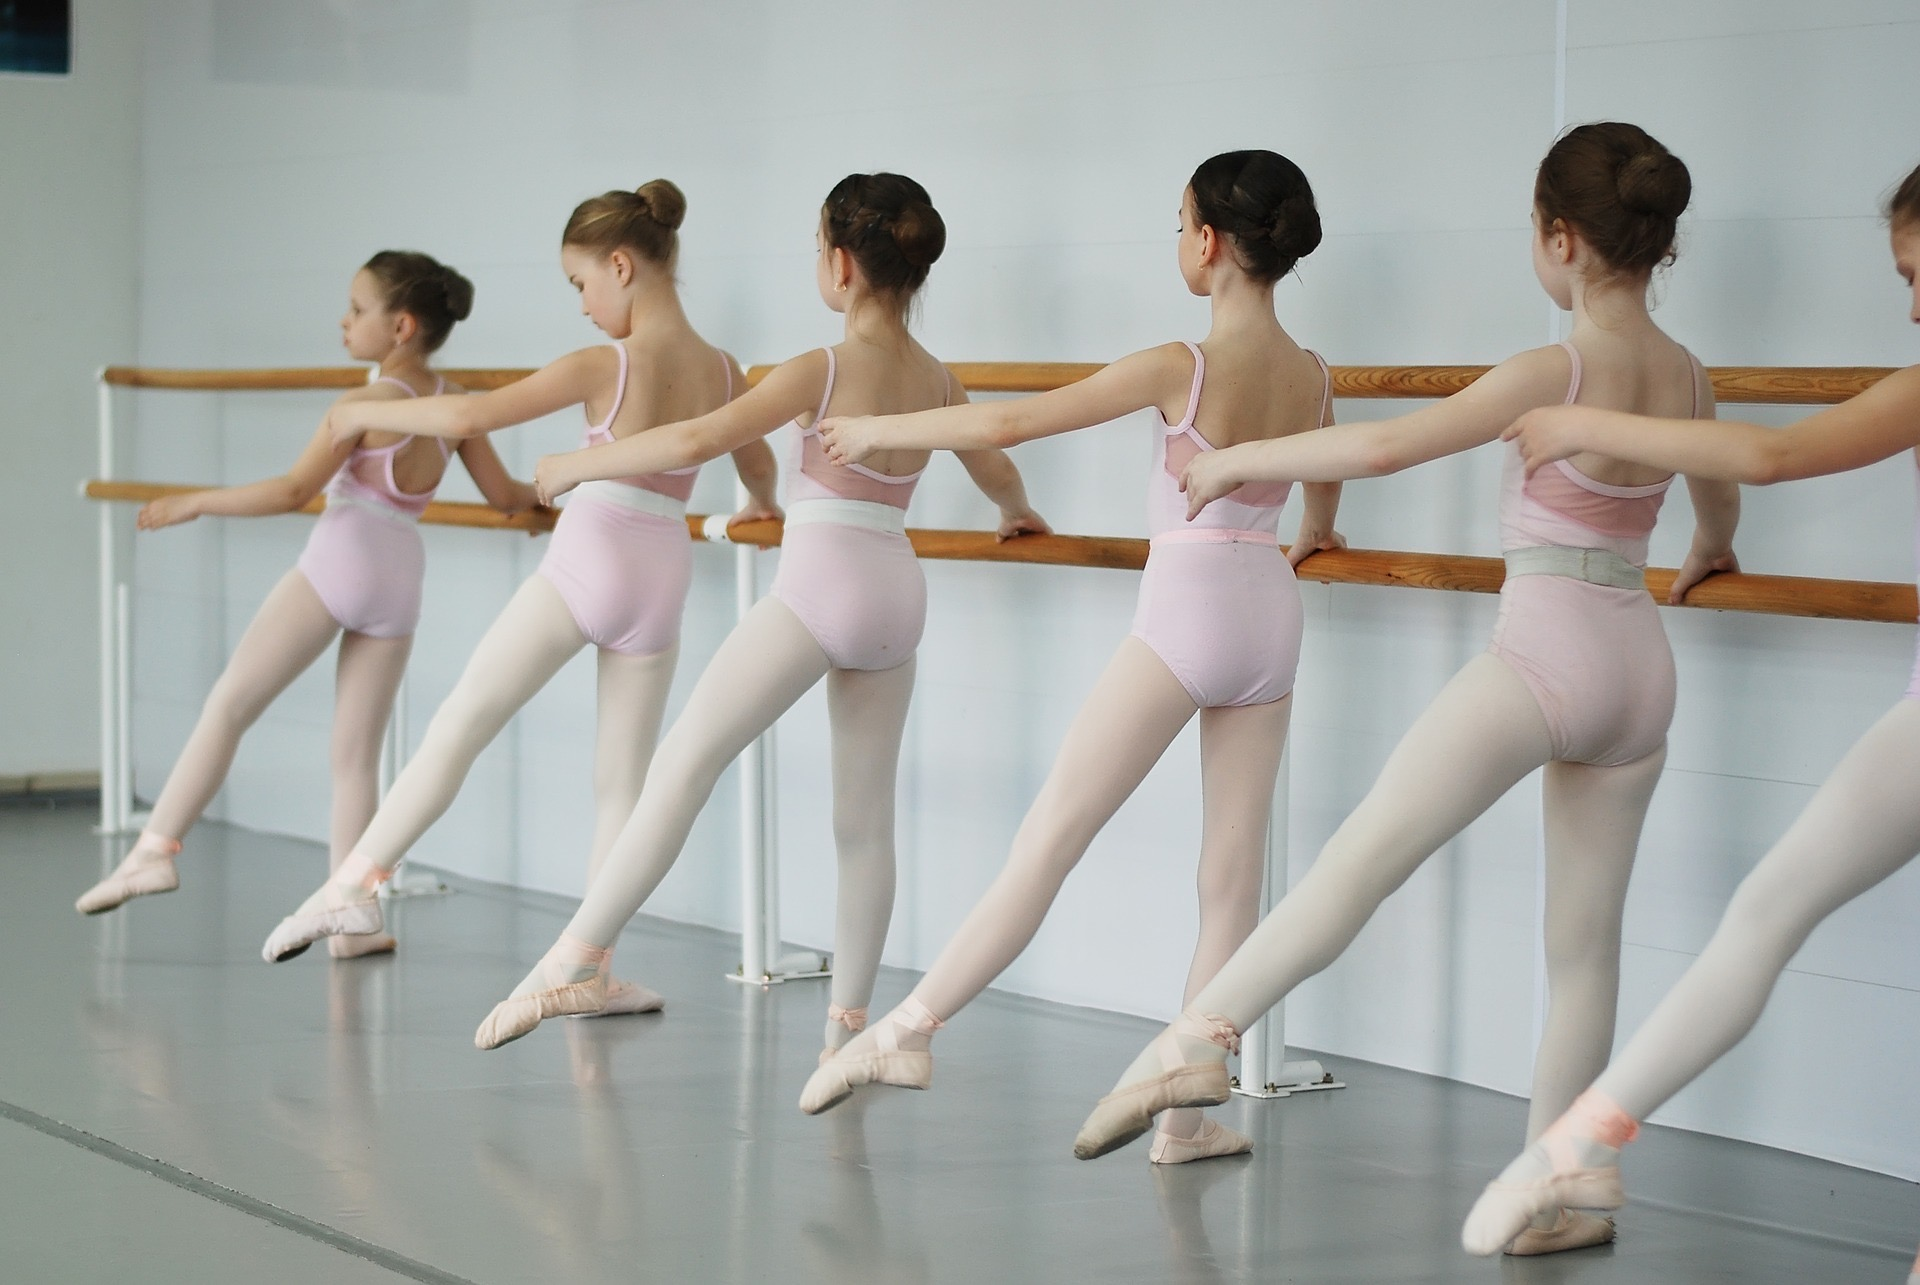 An image of five ballet dancers dancing at a ballet barre. Dressed in pink dance leotards, tights, and ballet shoes.